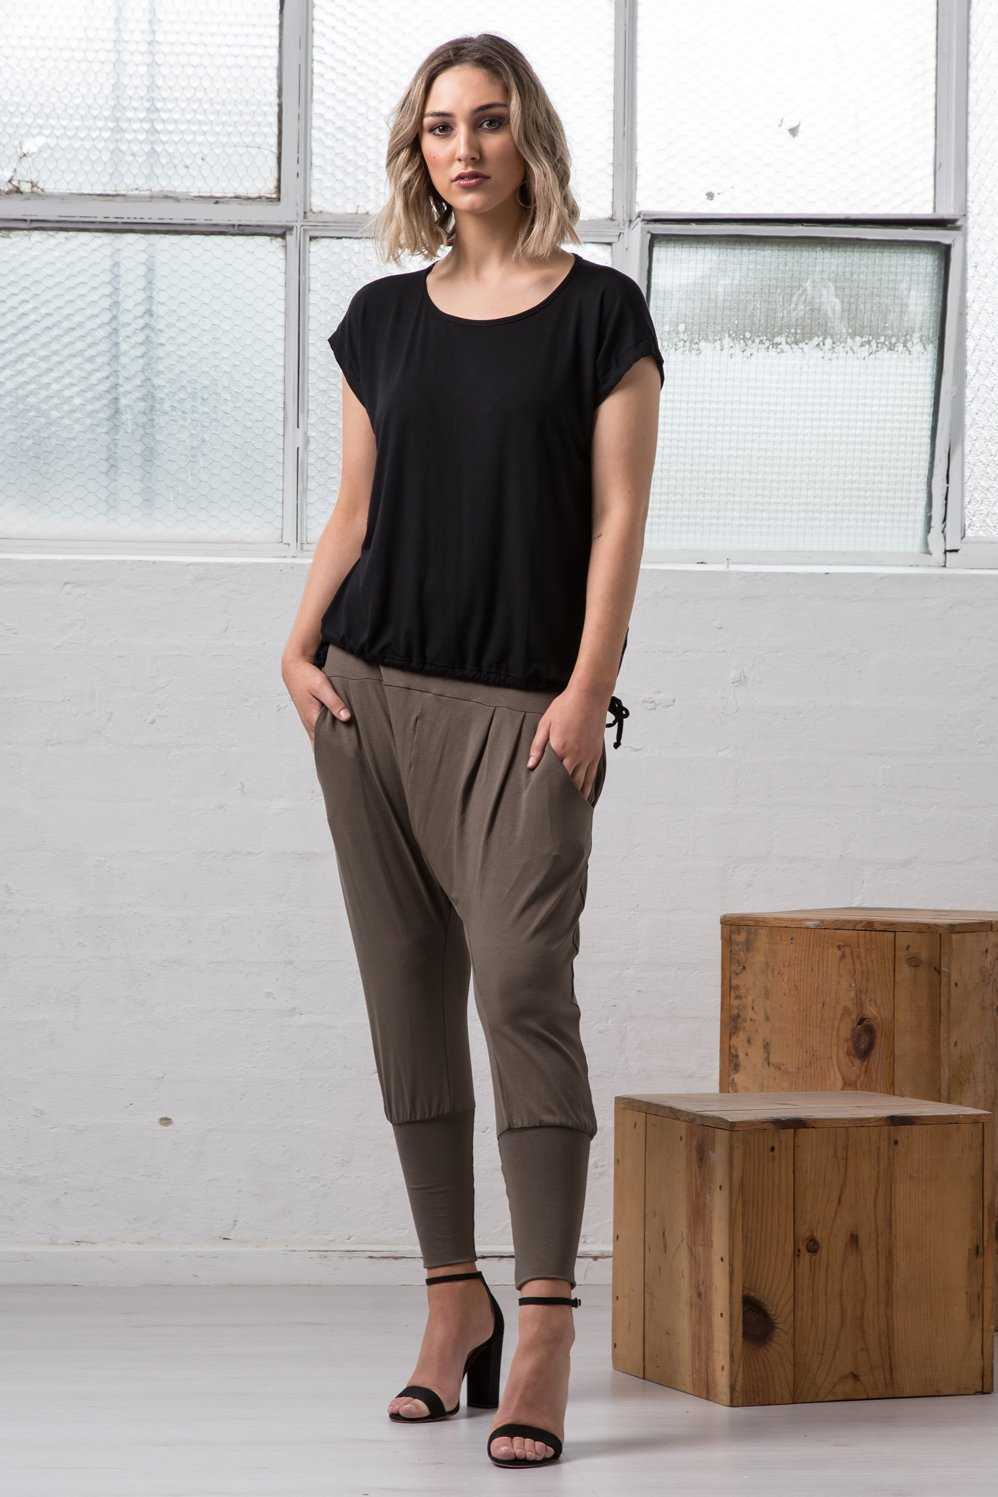 Micro modal Black top with ties over Khaki viscose pant